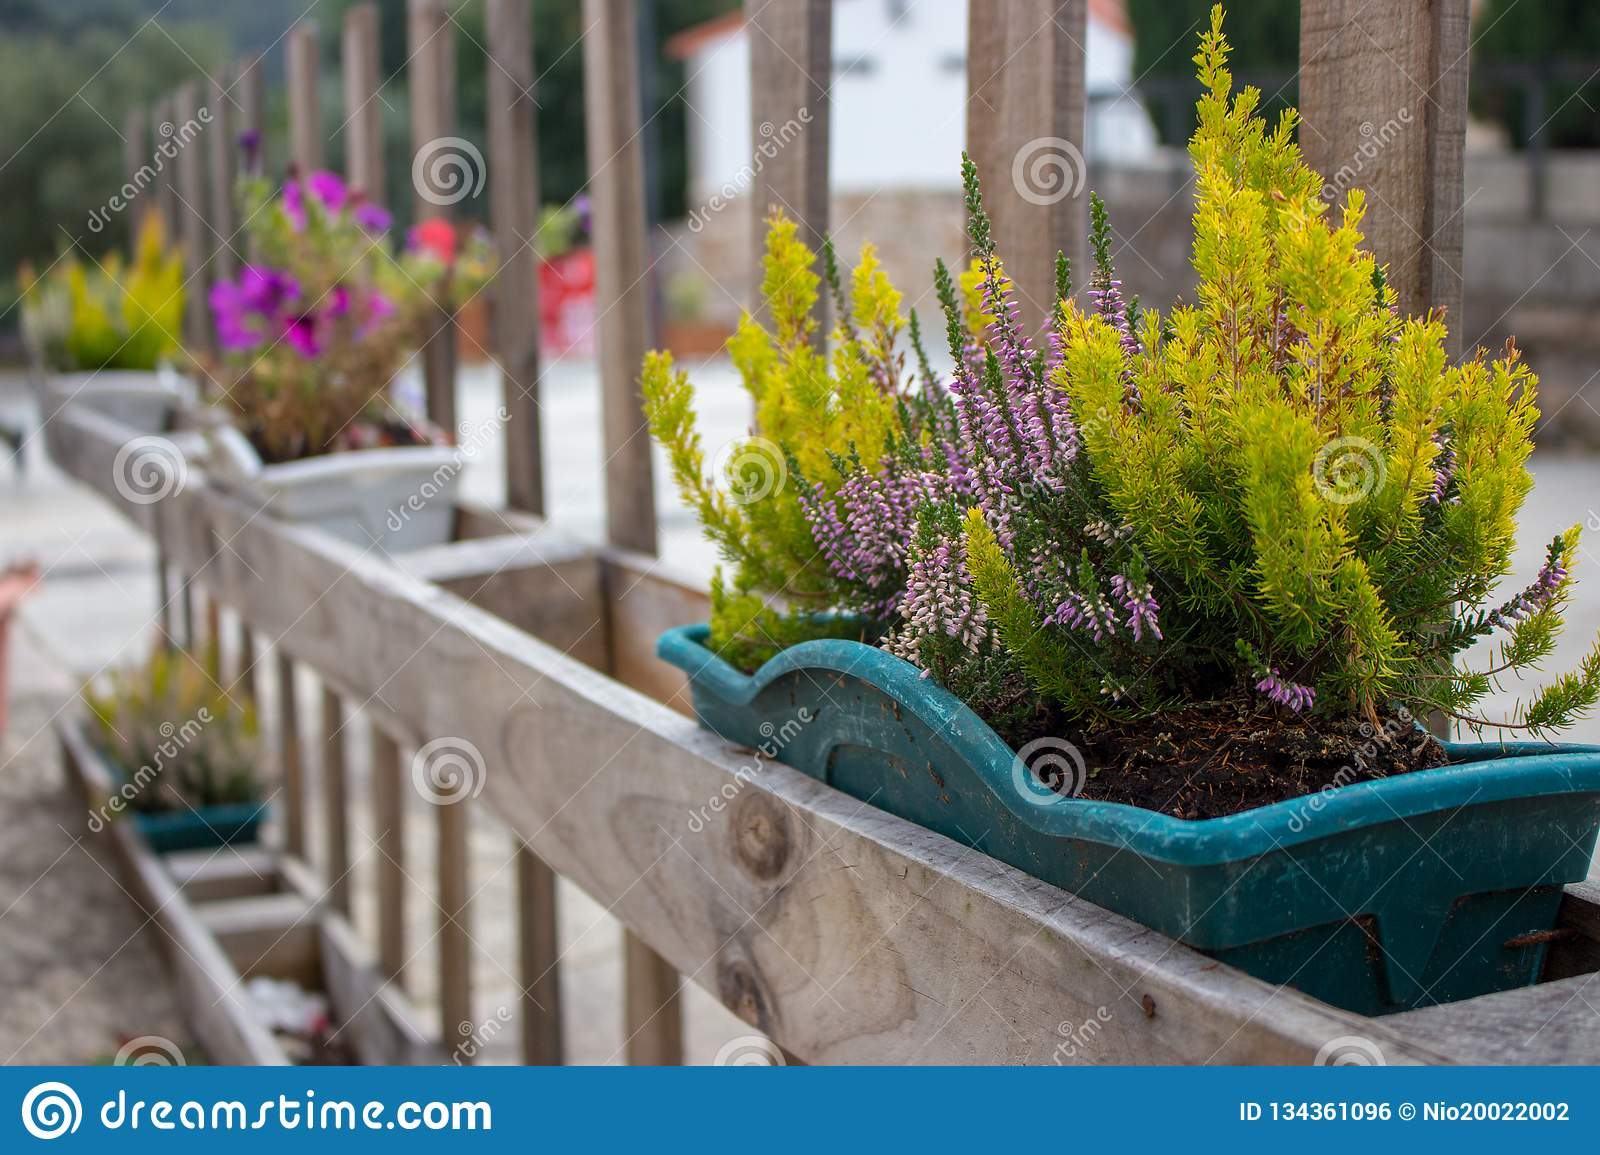 Green grass and blooming flowers in flower pots on fence. Flower containers on wooden fence in perspective. Terrace design.